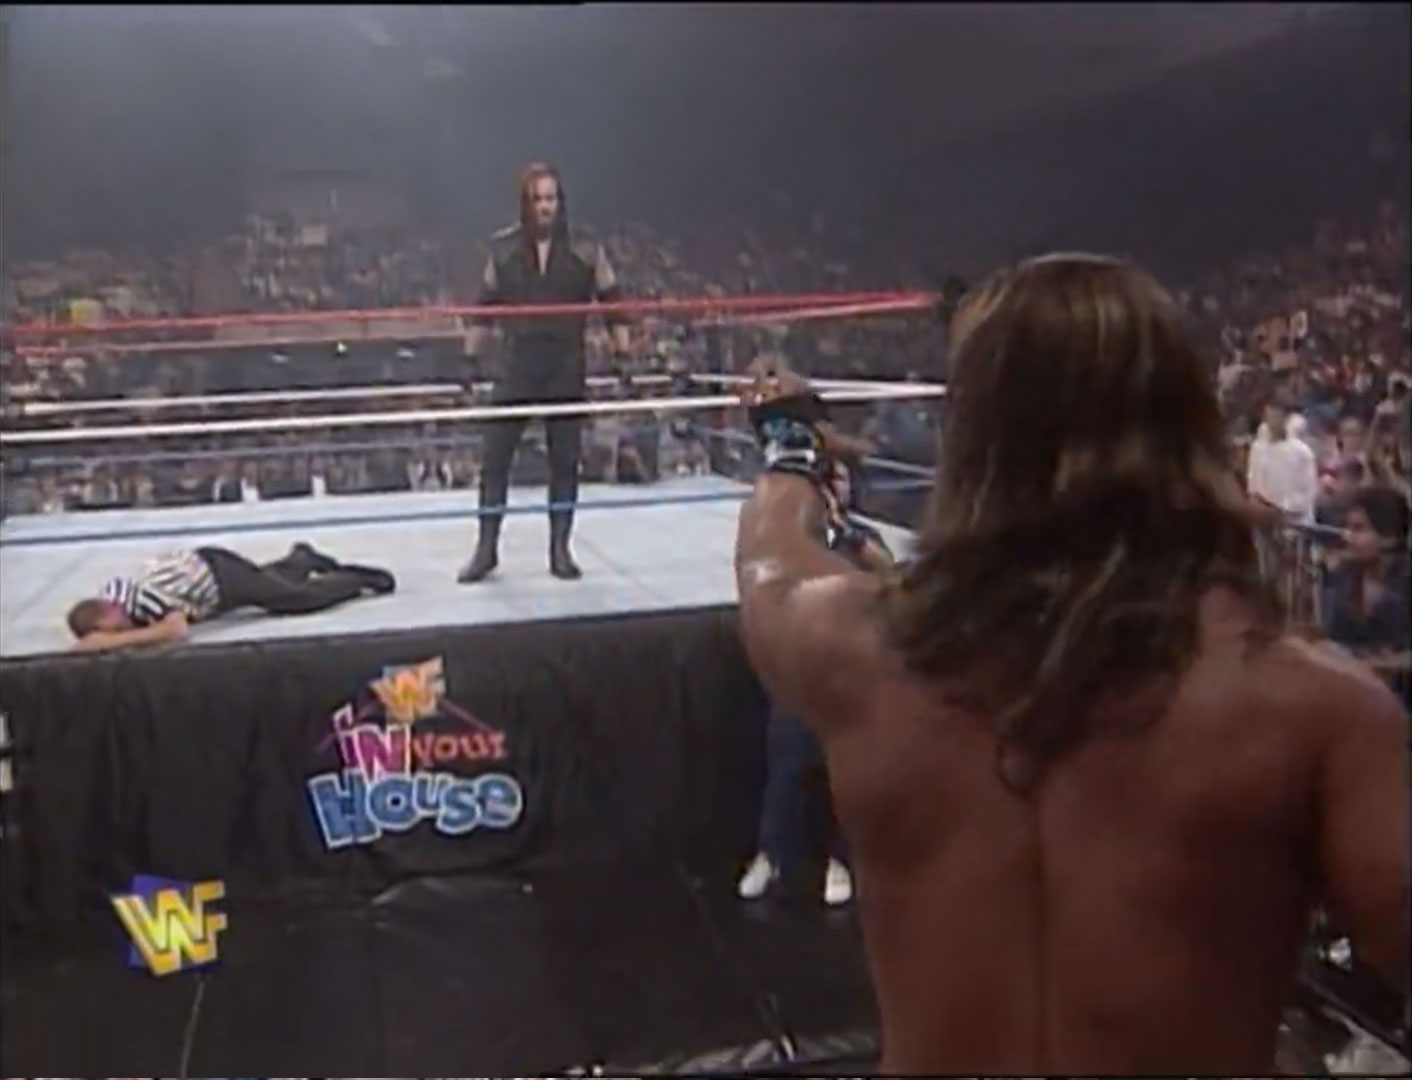 Shawn Michaels vs. The Undertaker WWF In Your House - Ground Zero Sep 7th 1997